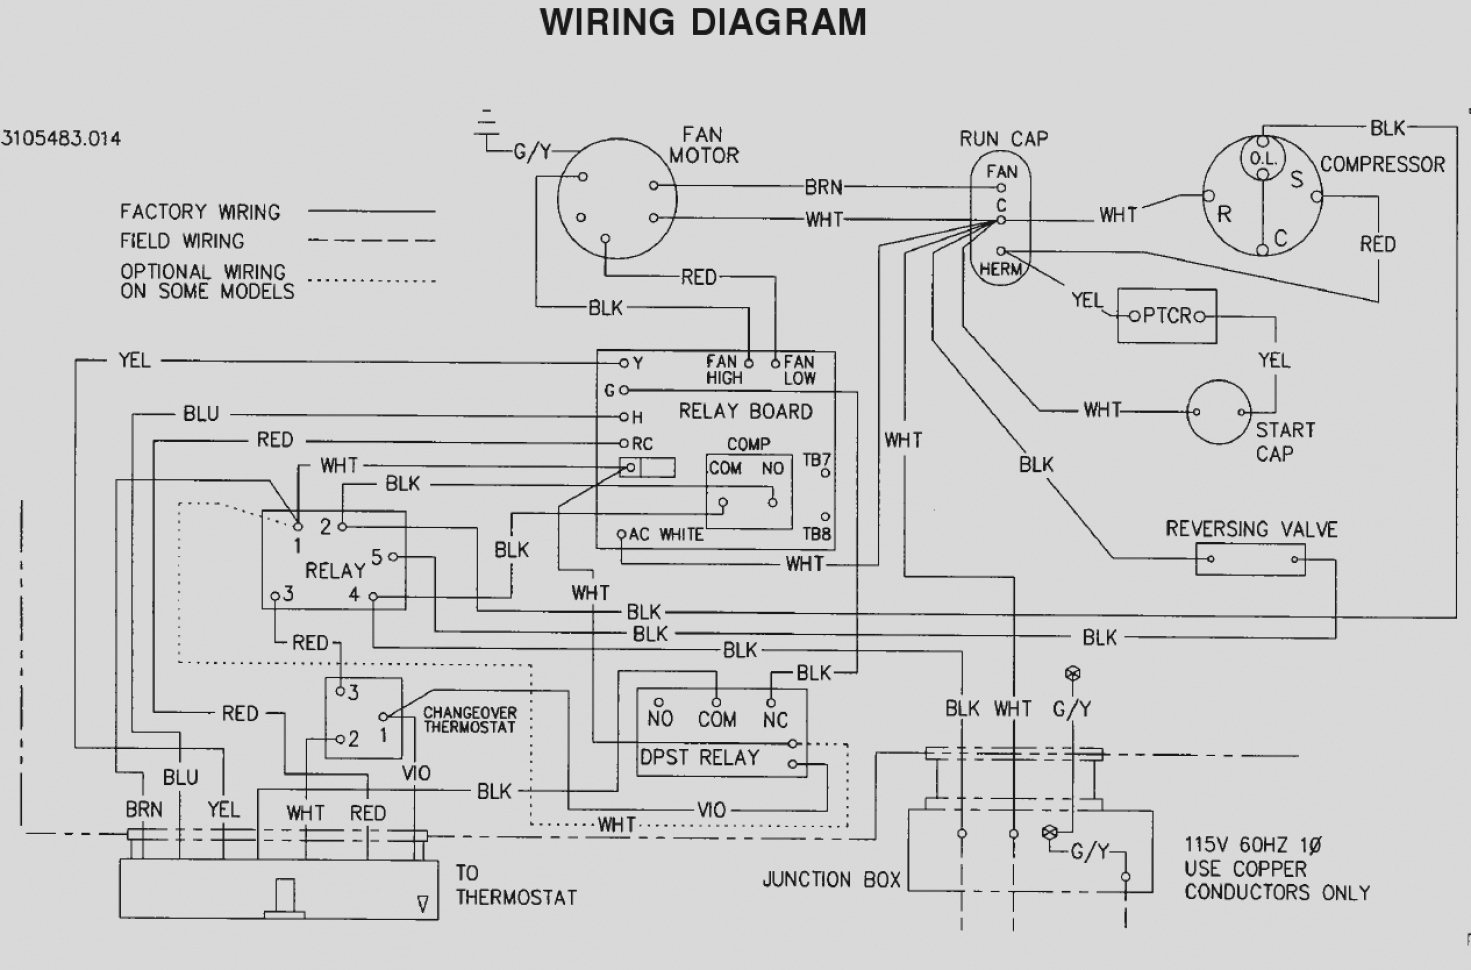 how to read hvac wiring schematics